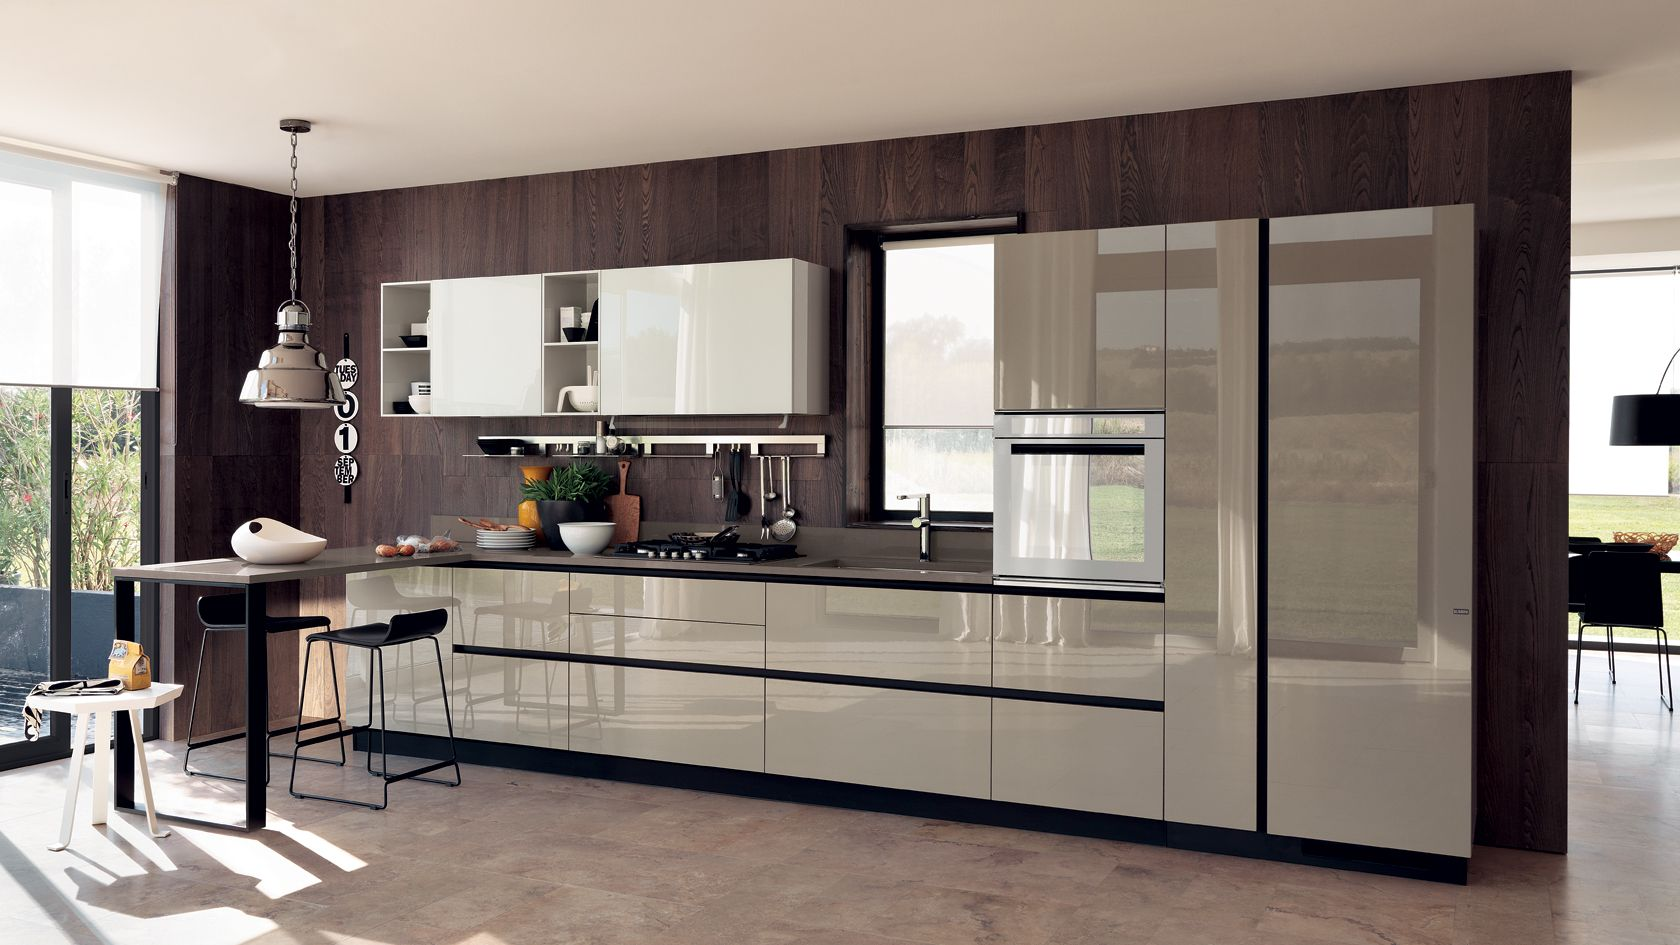 Design Your Kitchen With Appliances Connection & Scavolini | Home ...